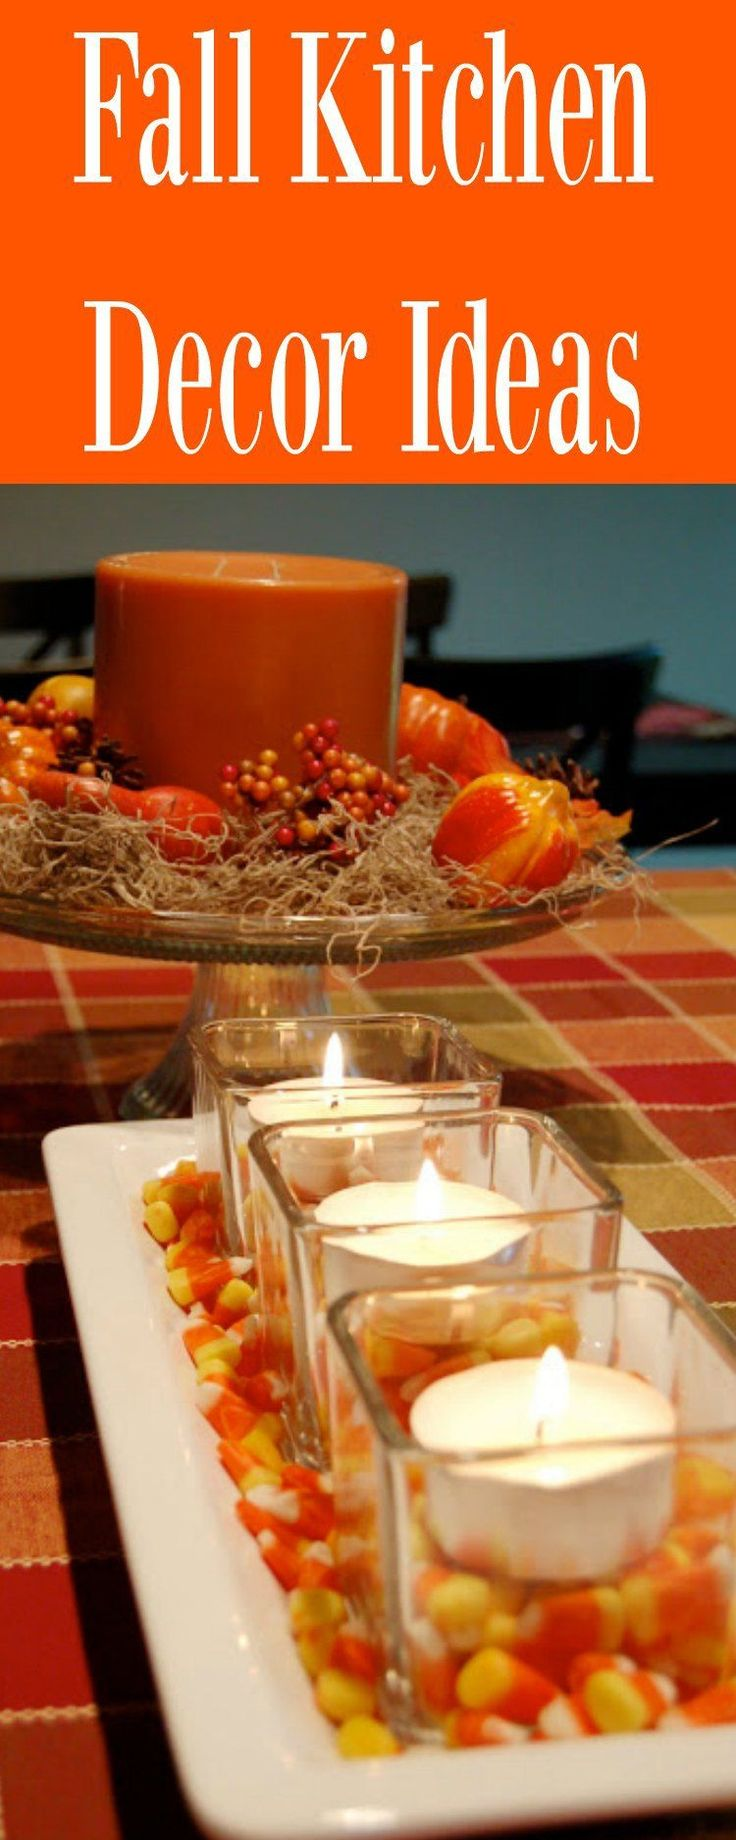 fall kitchen decor ideas decorate with pumpkins gourds and foliage - Fall Kitchen Decorating Ideas